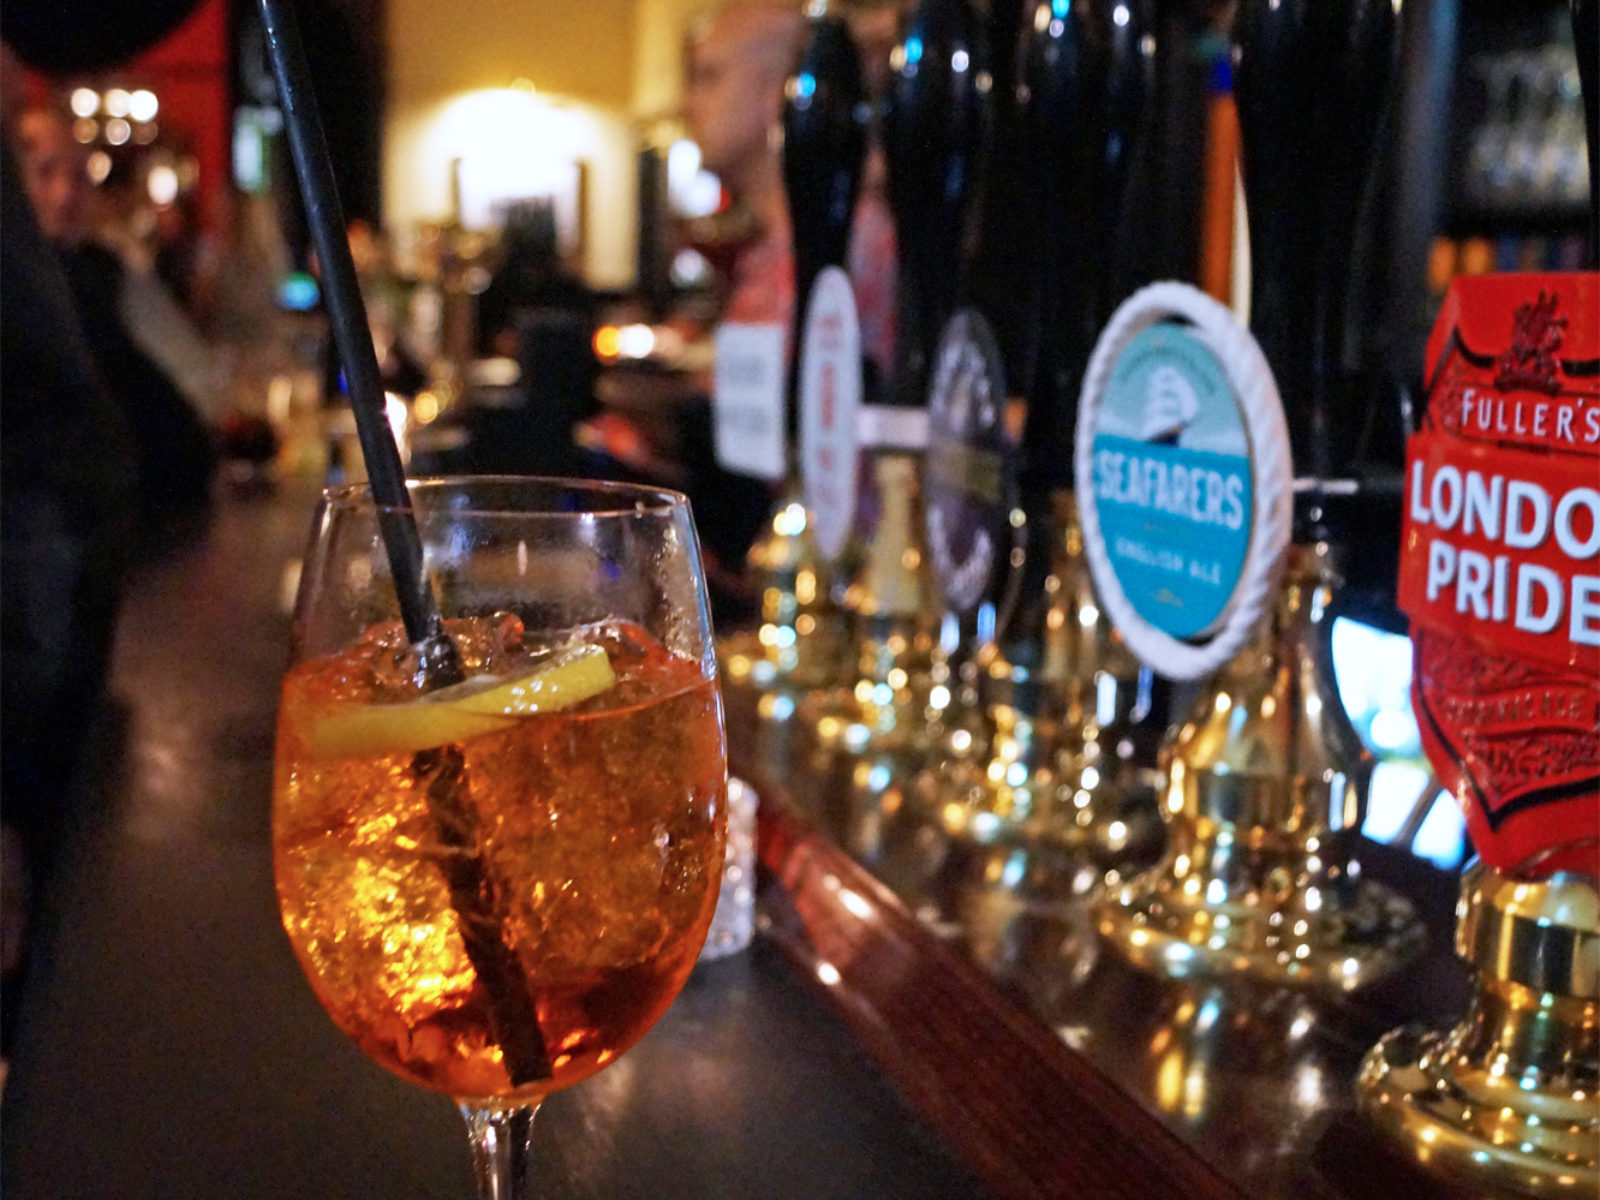 A refreshing Aperol Spritz at the Holly Tree